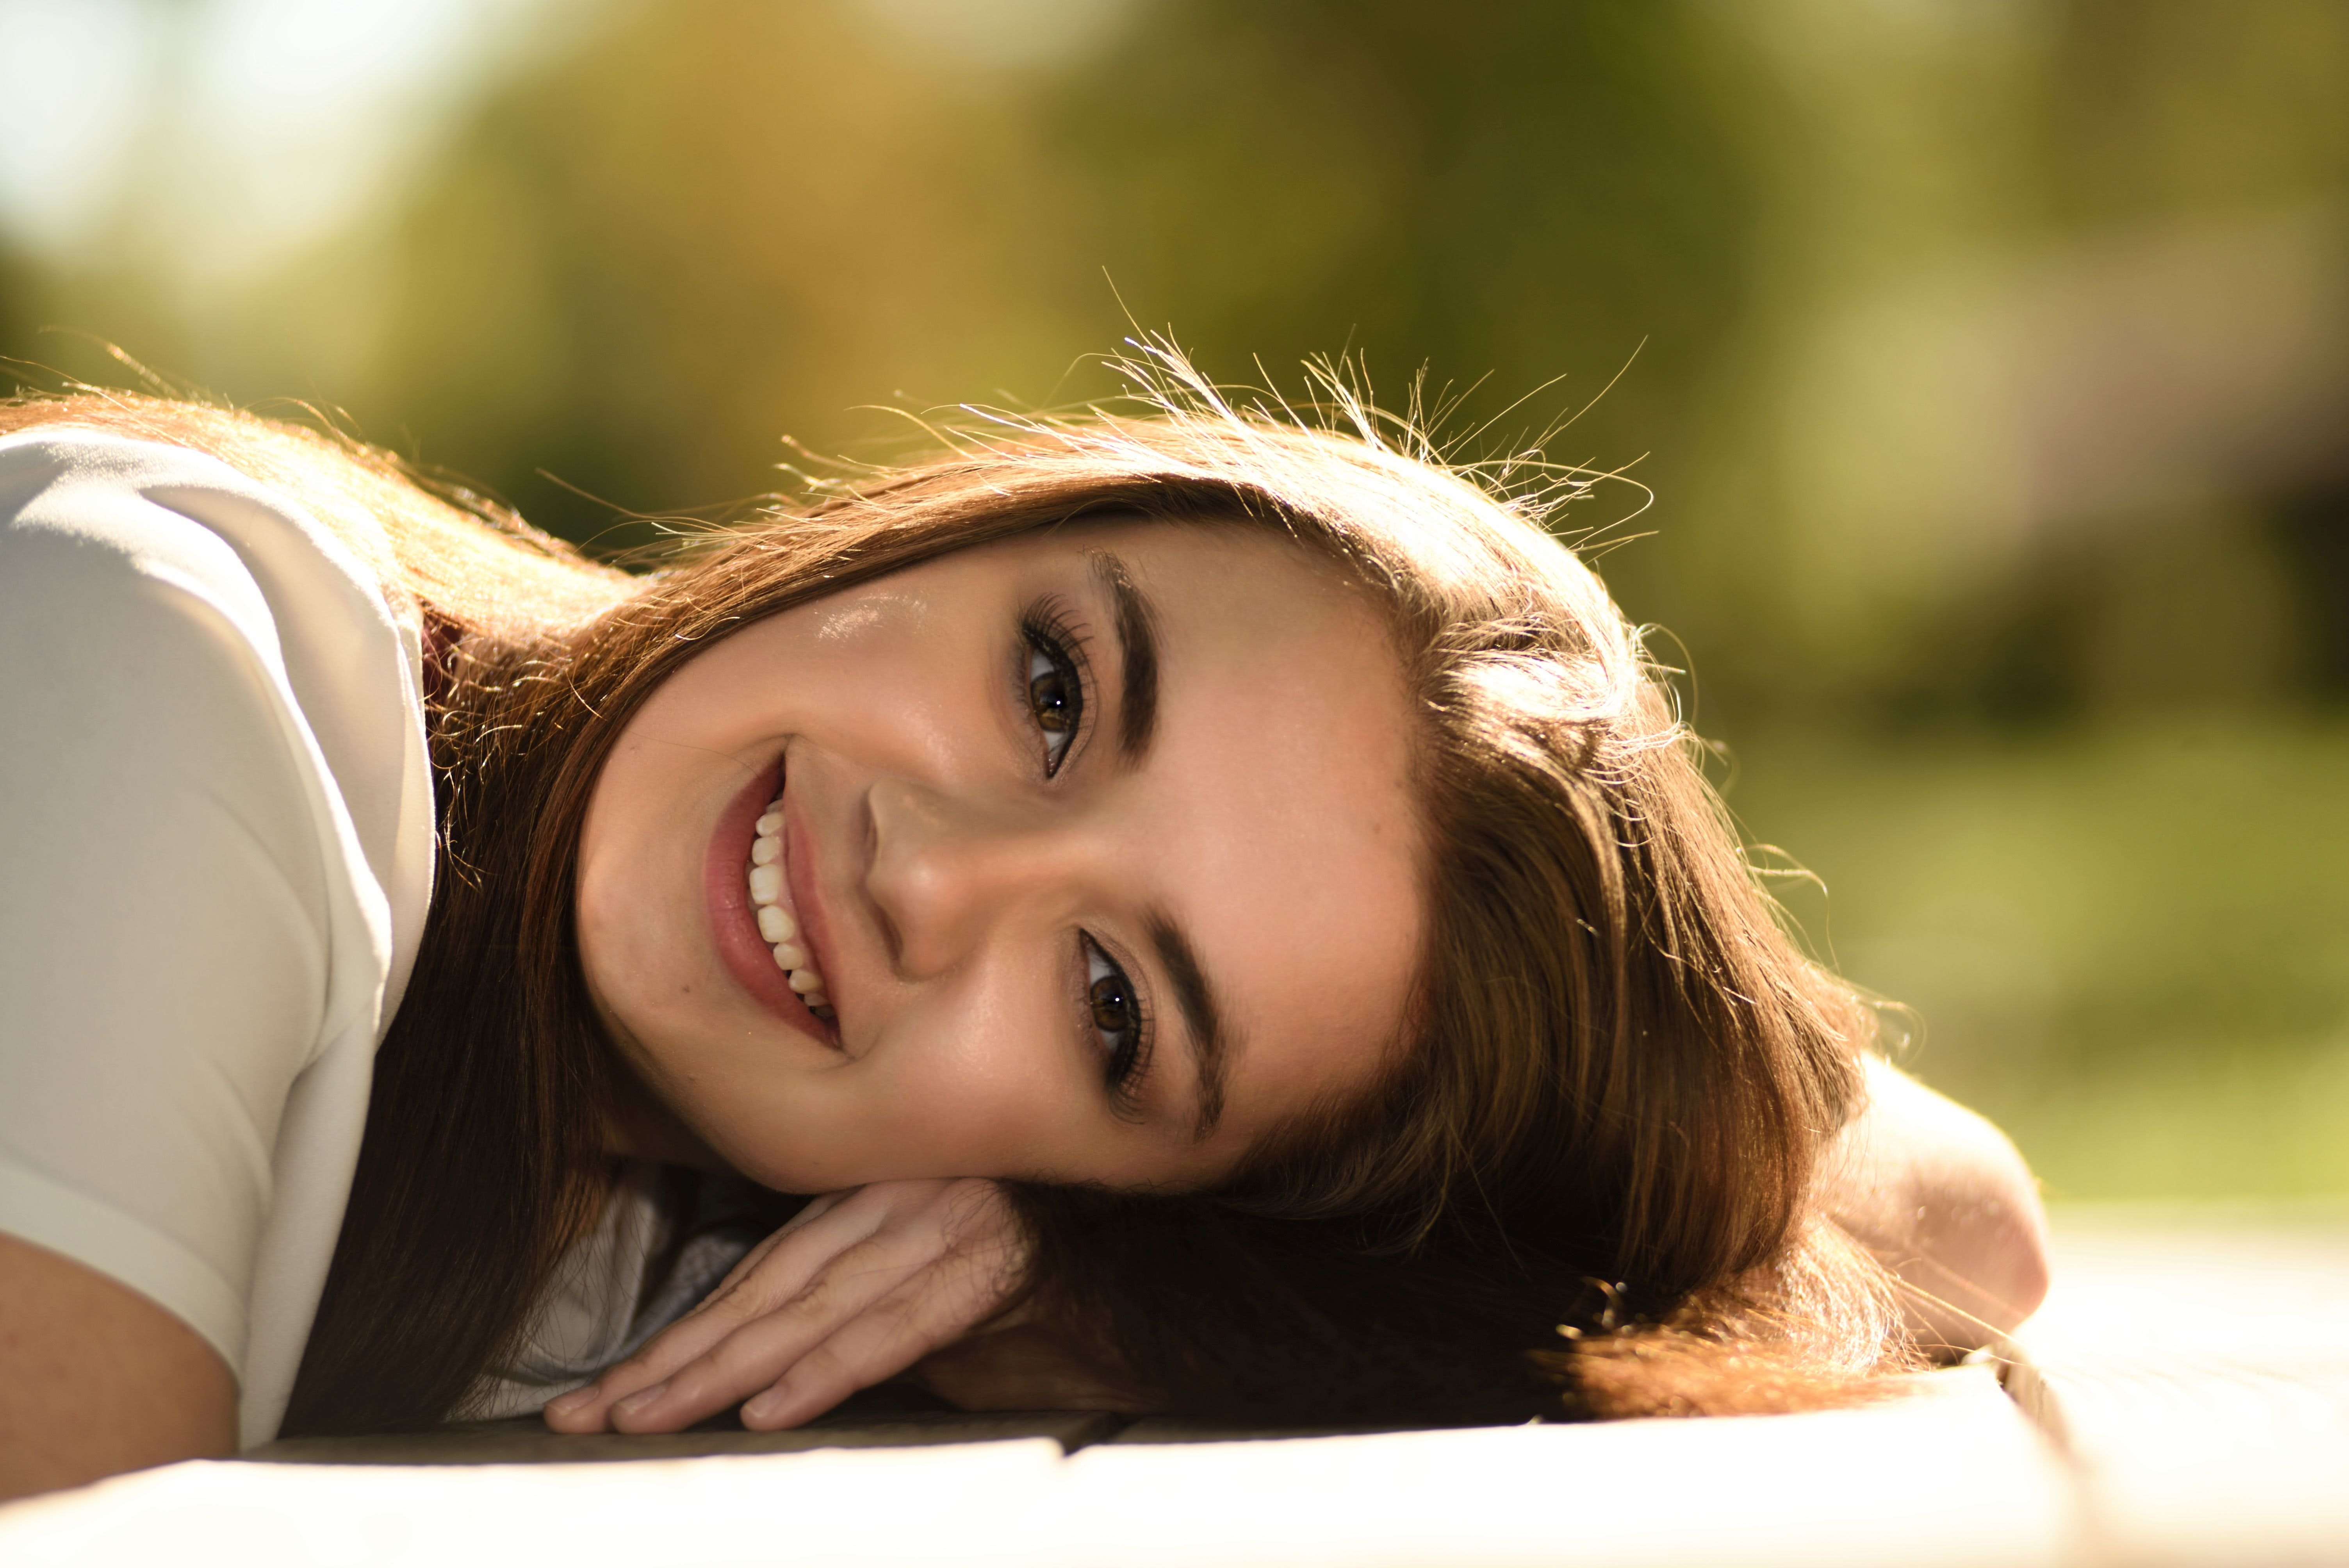 Close Up Photography of Woman Laying on Table, Hand, Young, Woman, Smiling, HQ Photo